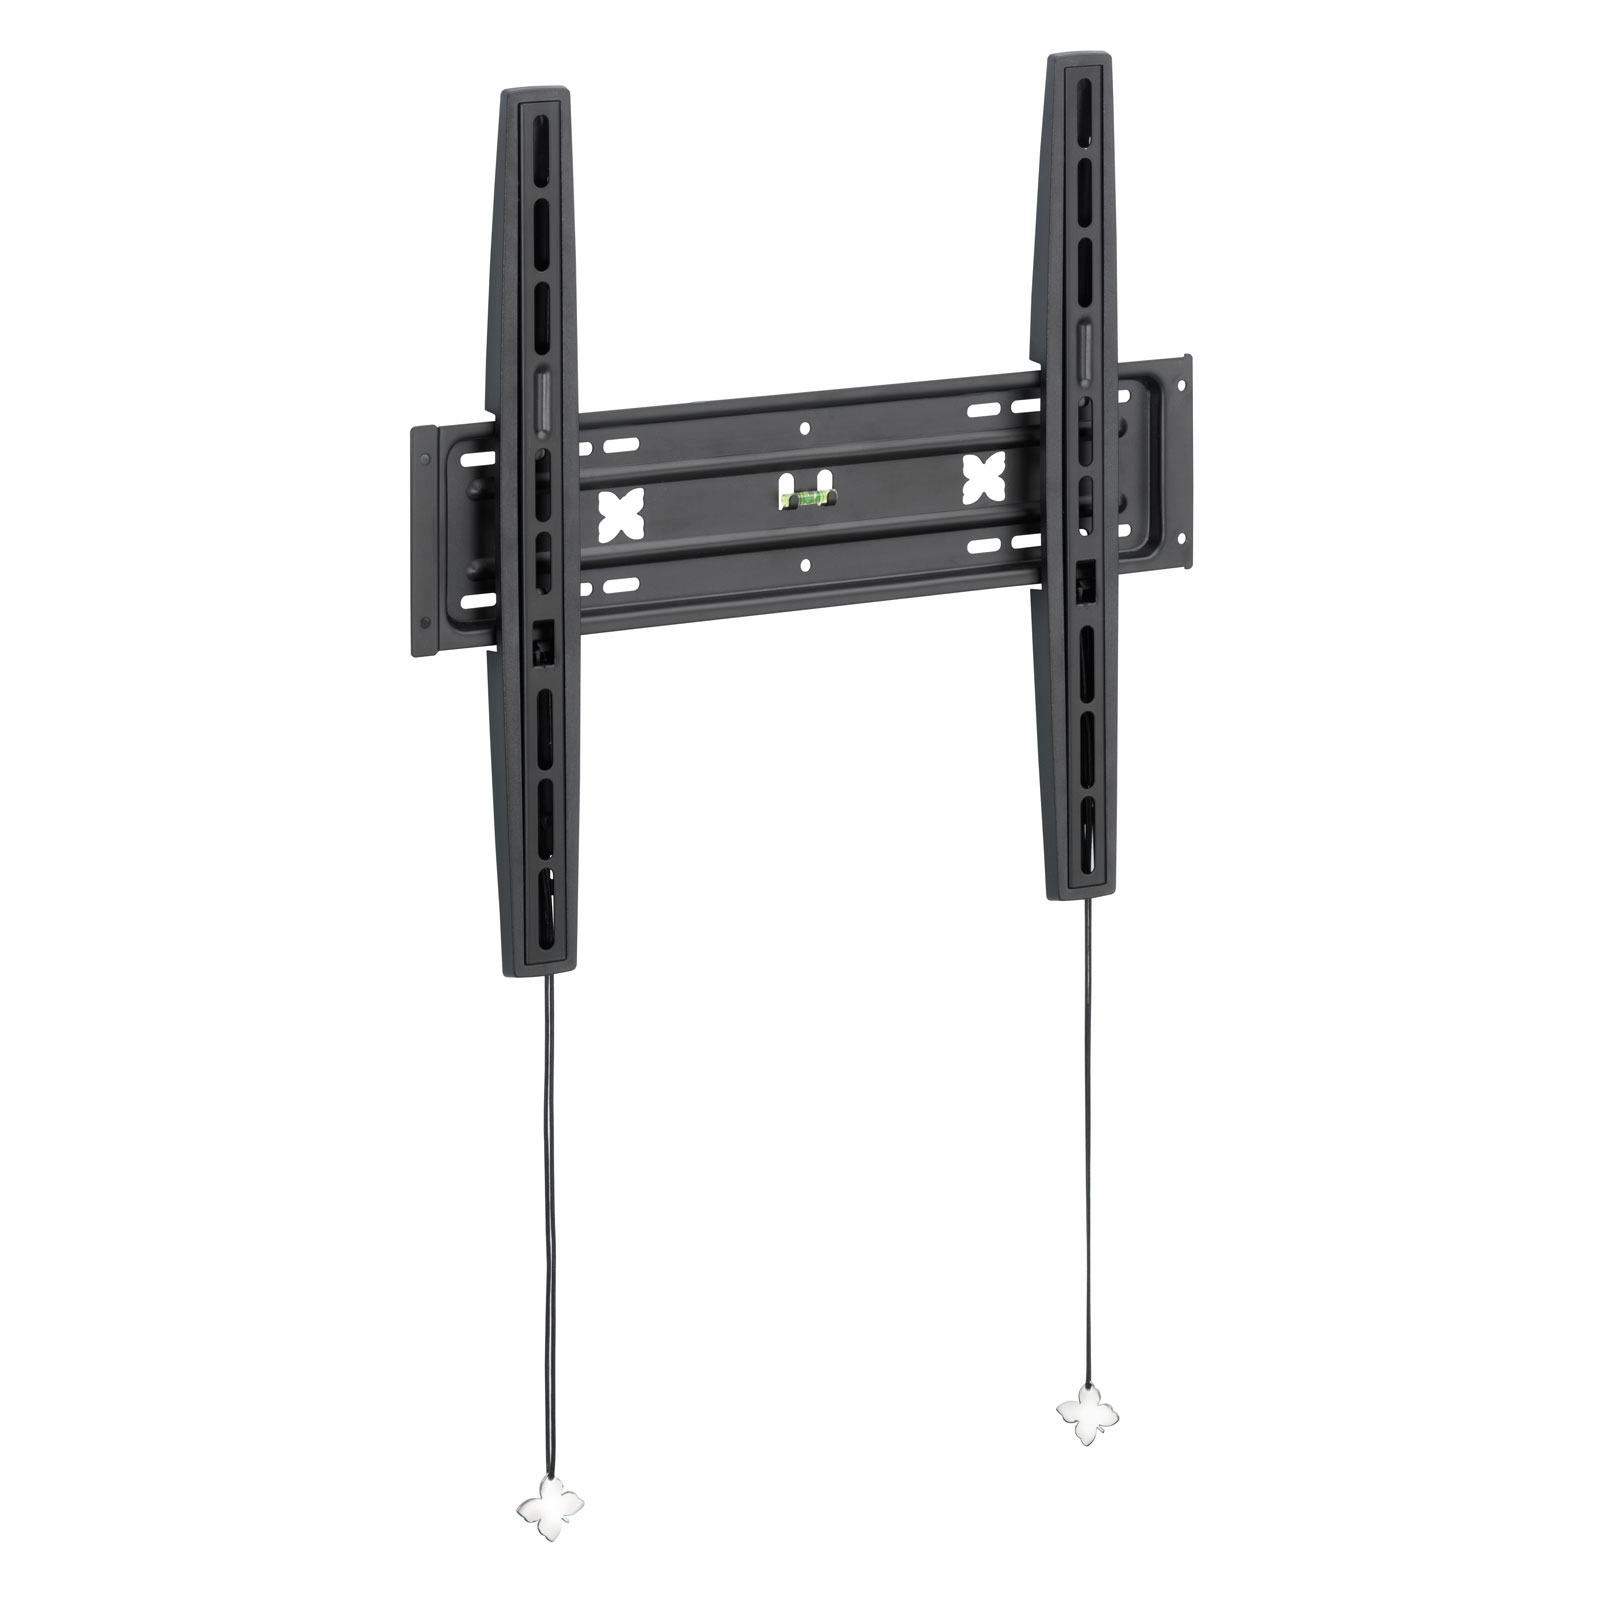 meliconi s400 support mural tv meliconi sur. Black Bedroom Furniture Sets. Home Design Ideas